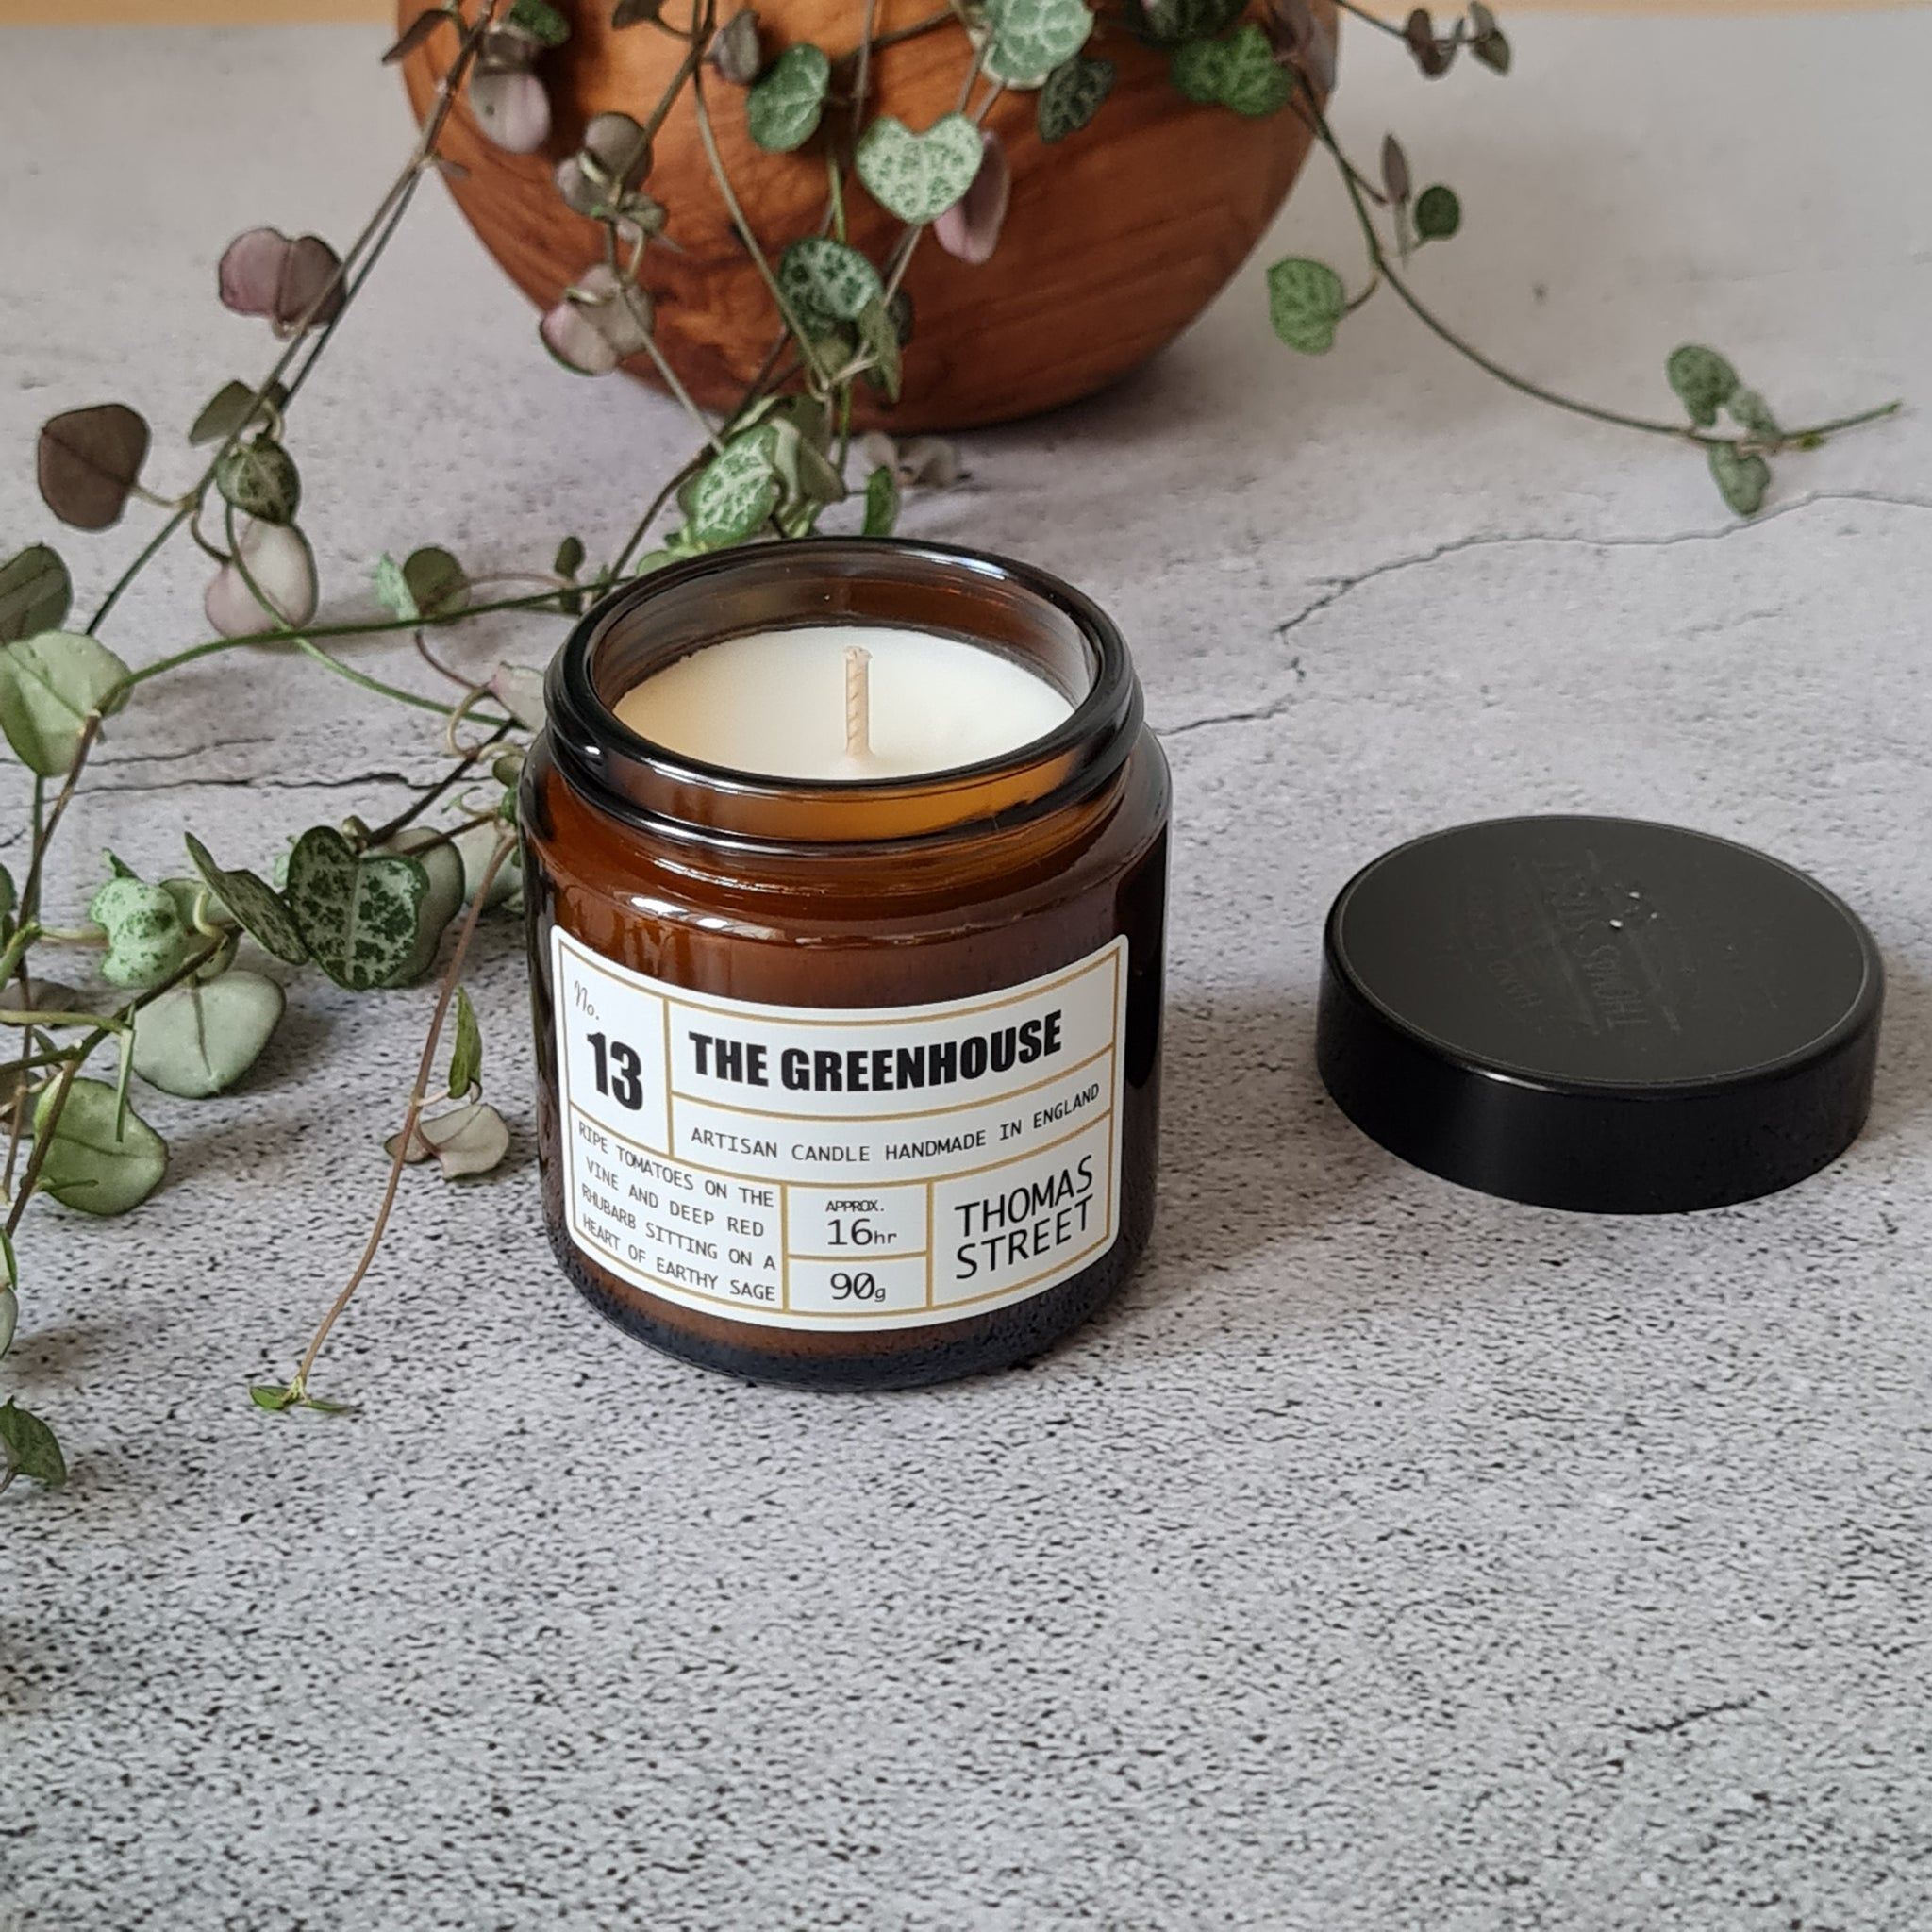 GREENHOUSE APOTHECARY TRAVEL CANDLES